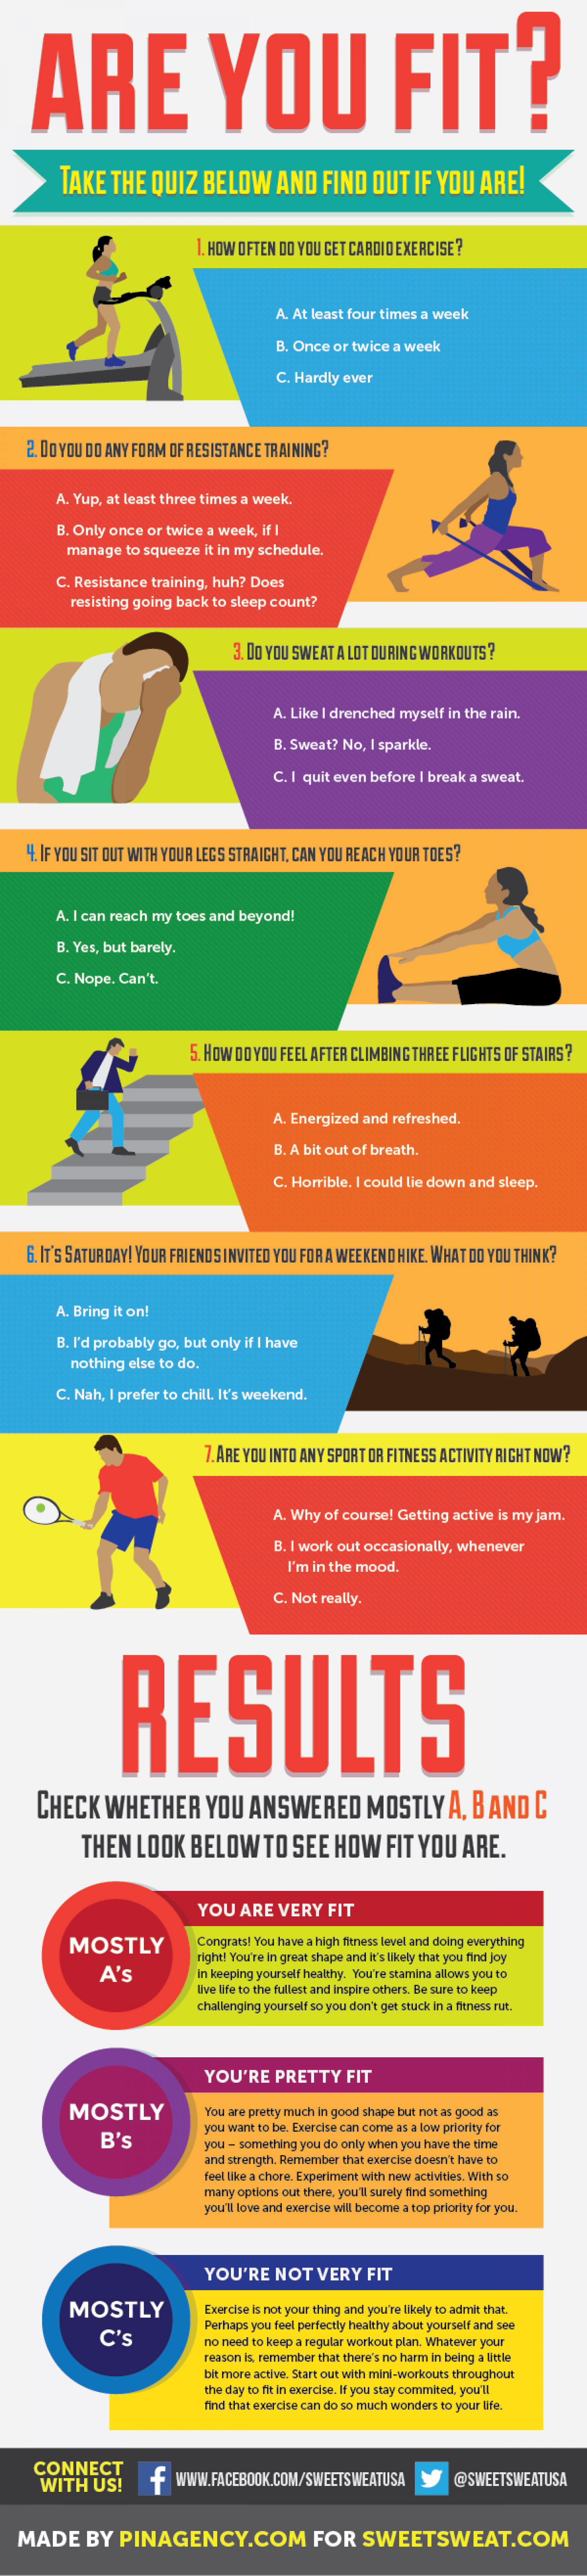 Are You Fit? Infographic